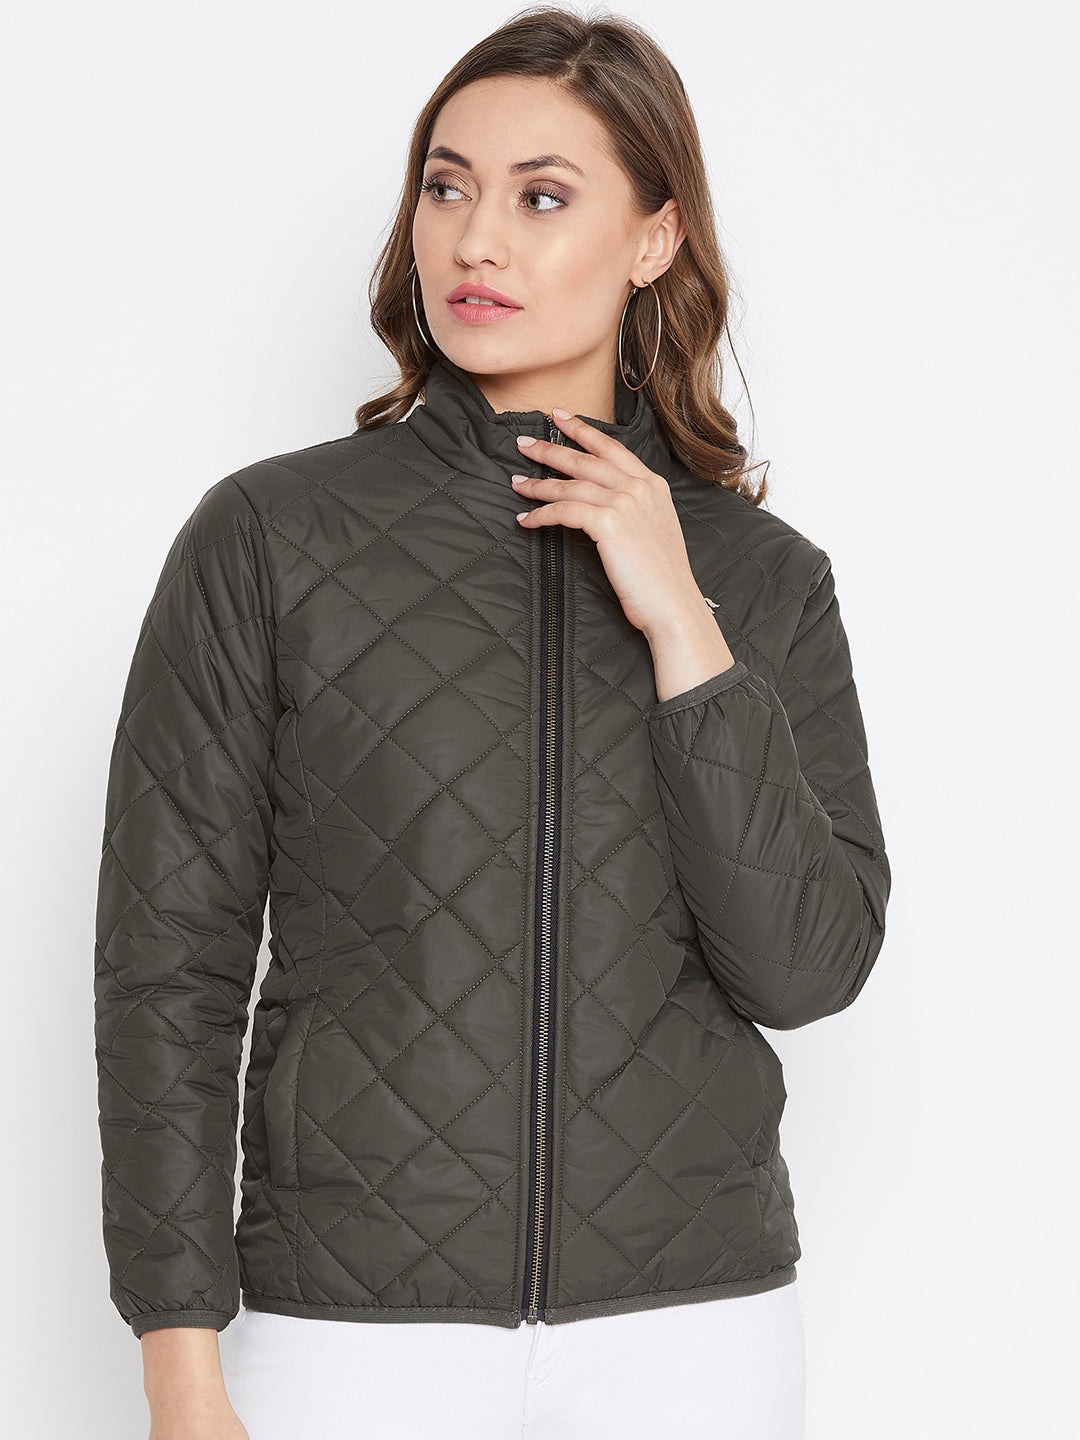 JUMP USA Women Olive Casual Quilted Jacket - JUMP USA